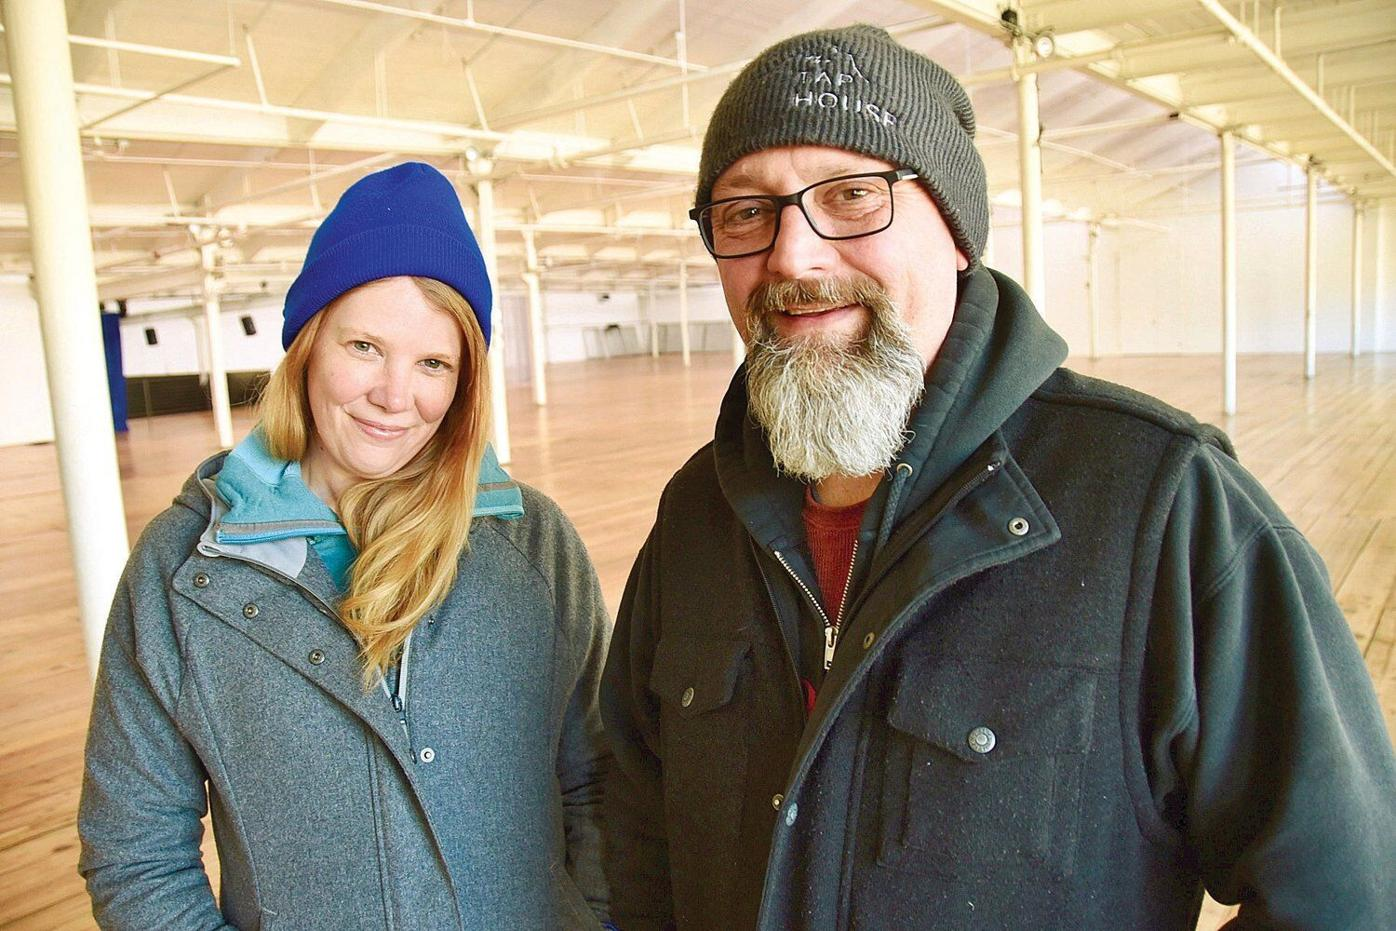 New eatery, with top Berkshires chef, to open in Greylock Works building